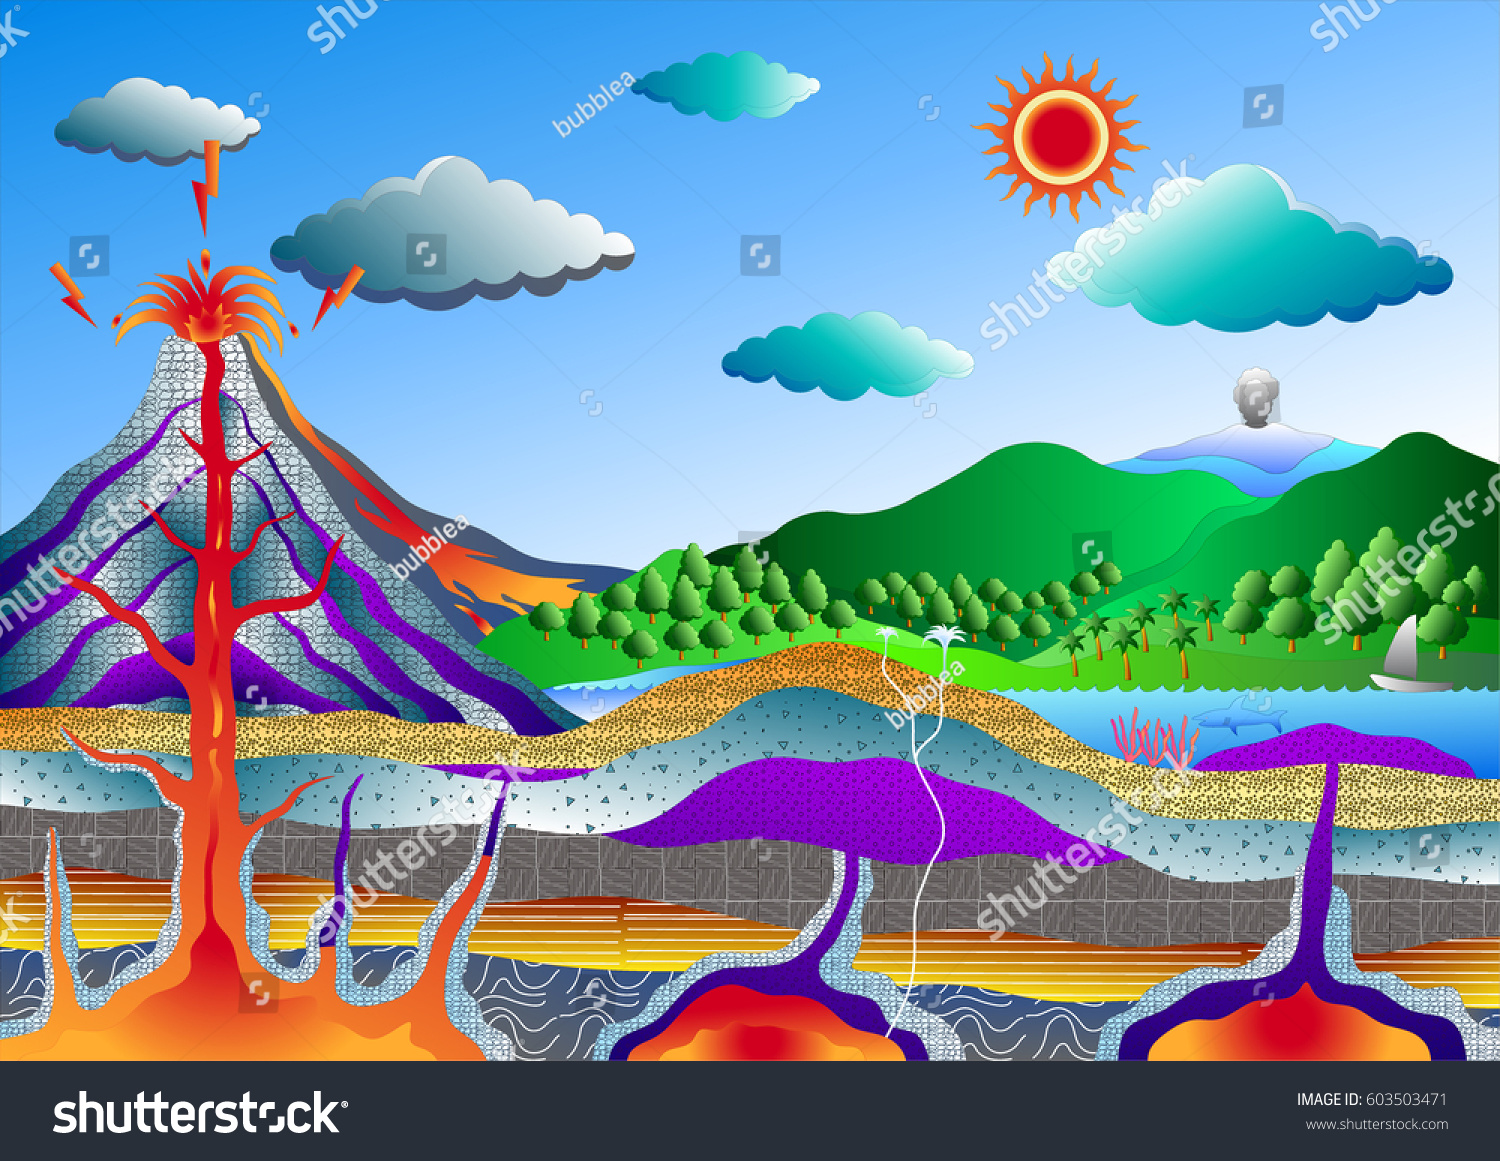 hight resolution of rock cycle diagram vector art for graphic or website layout vector